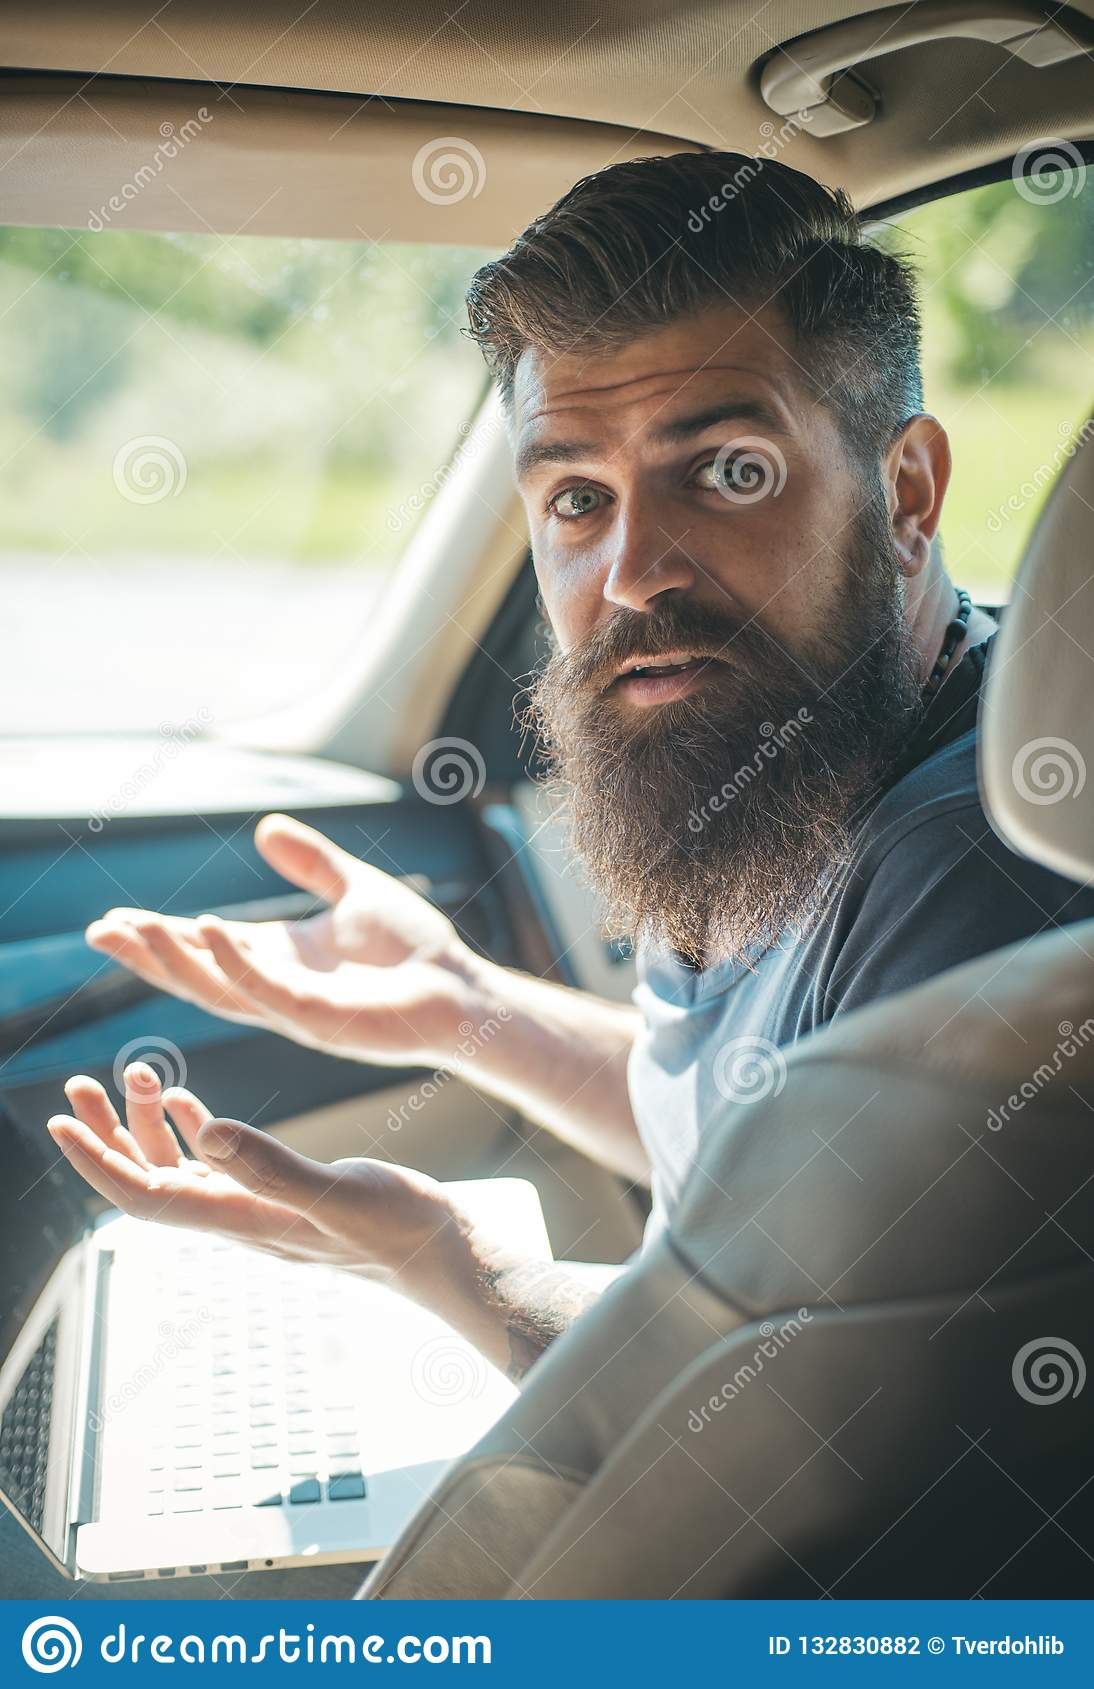 Mature hipster with beard. being late. rush hour. lack of time. deadline. brutal caucasian hipster with moustache. Male